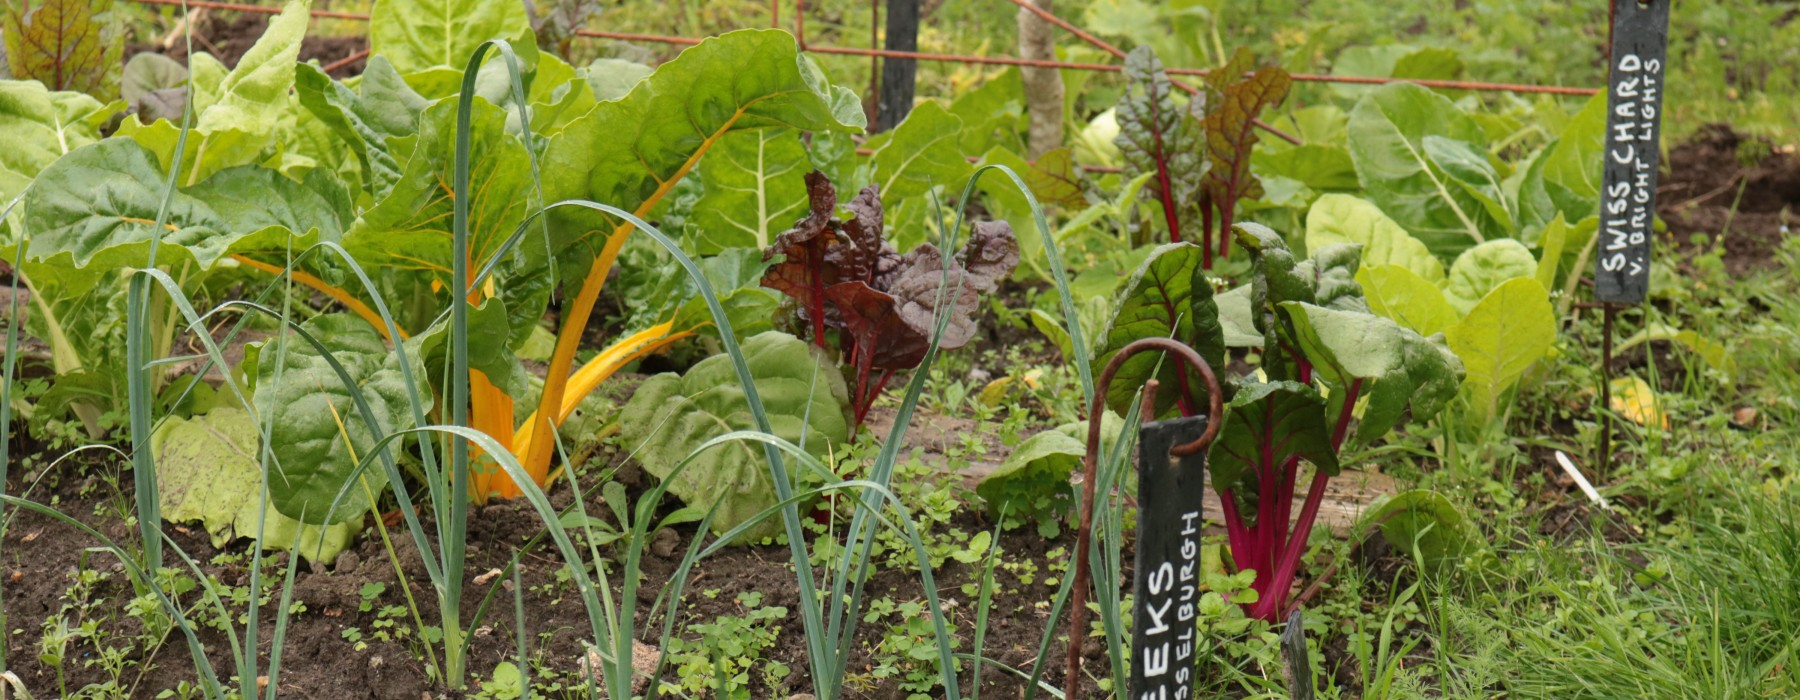 A wet Wednesday on the allotment